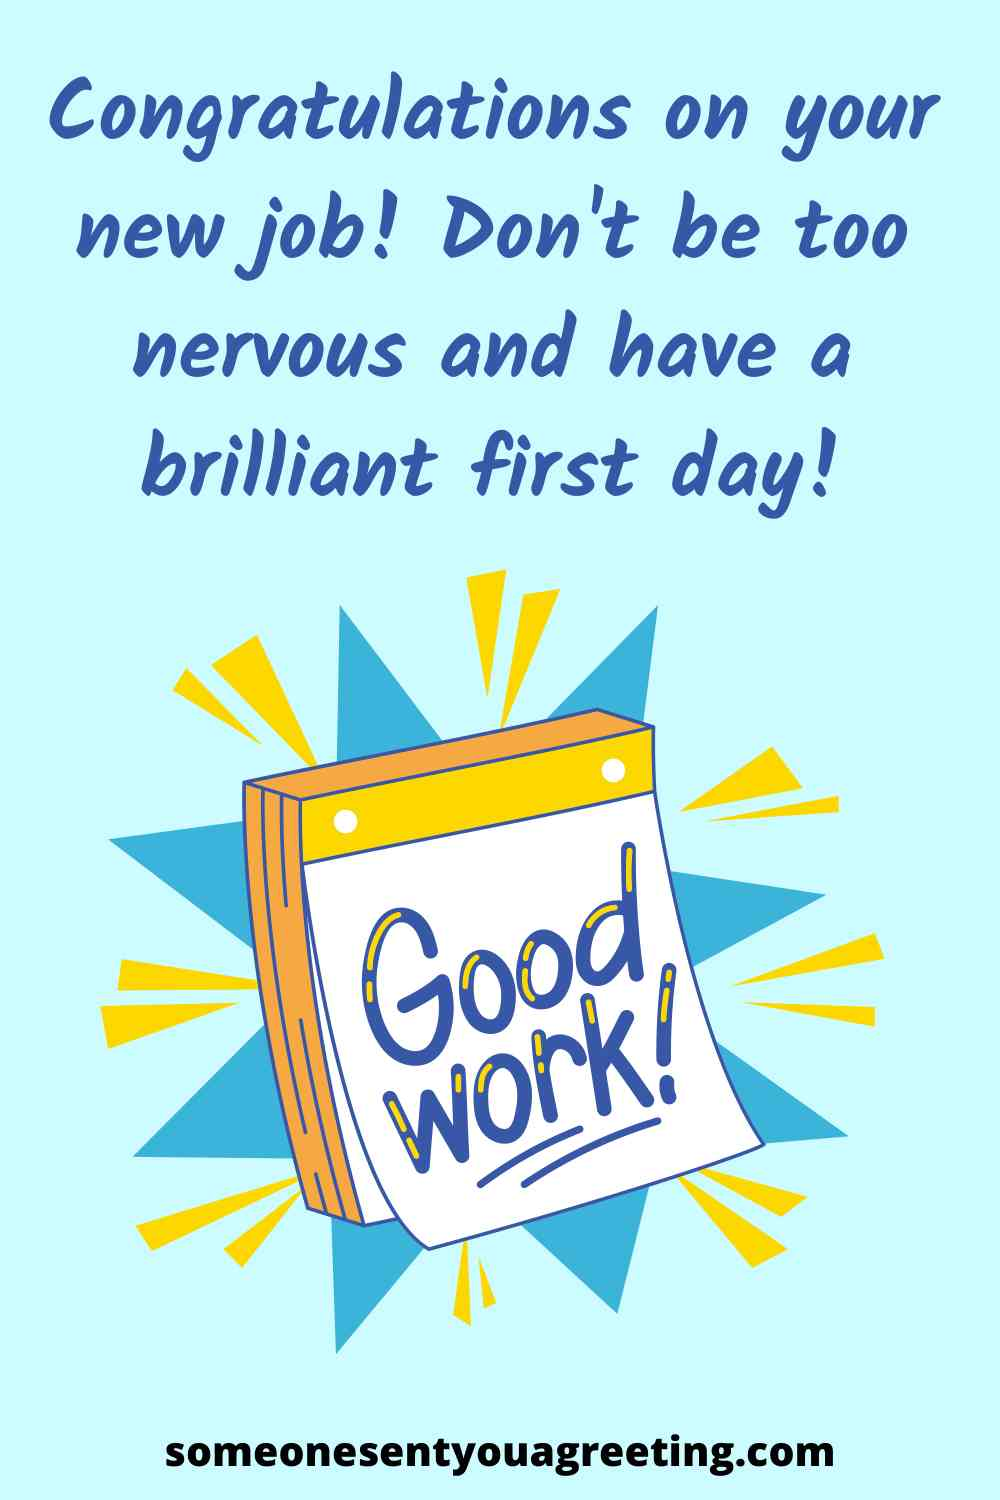 first day of work wishes for a new job